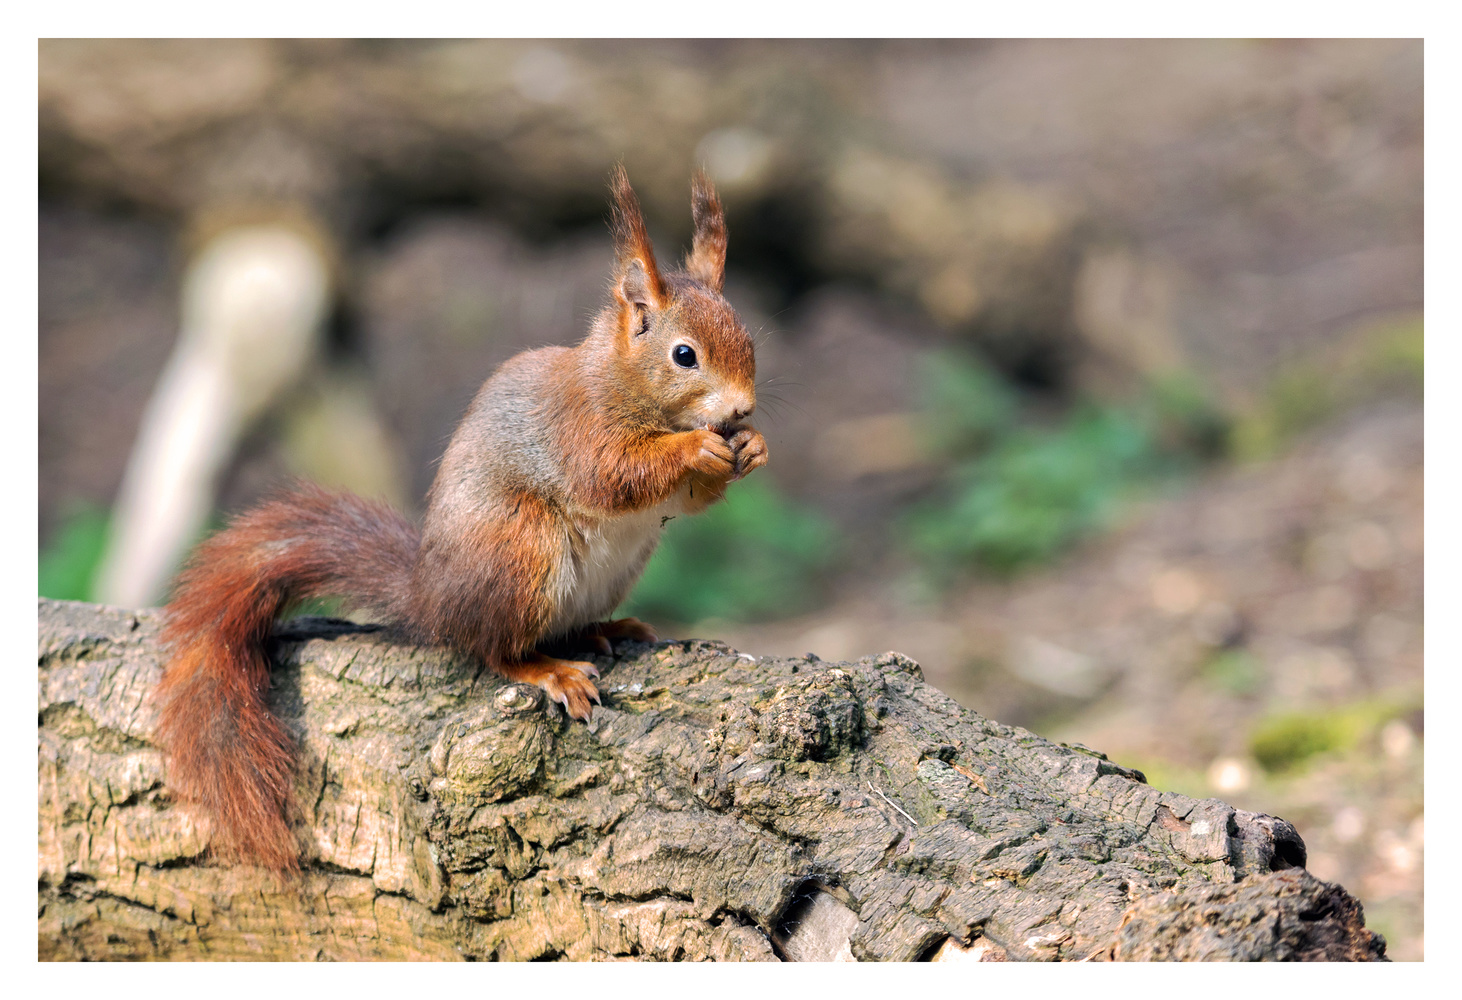 Red squirrel by Clare Lusher